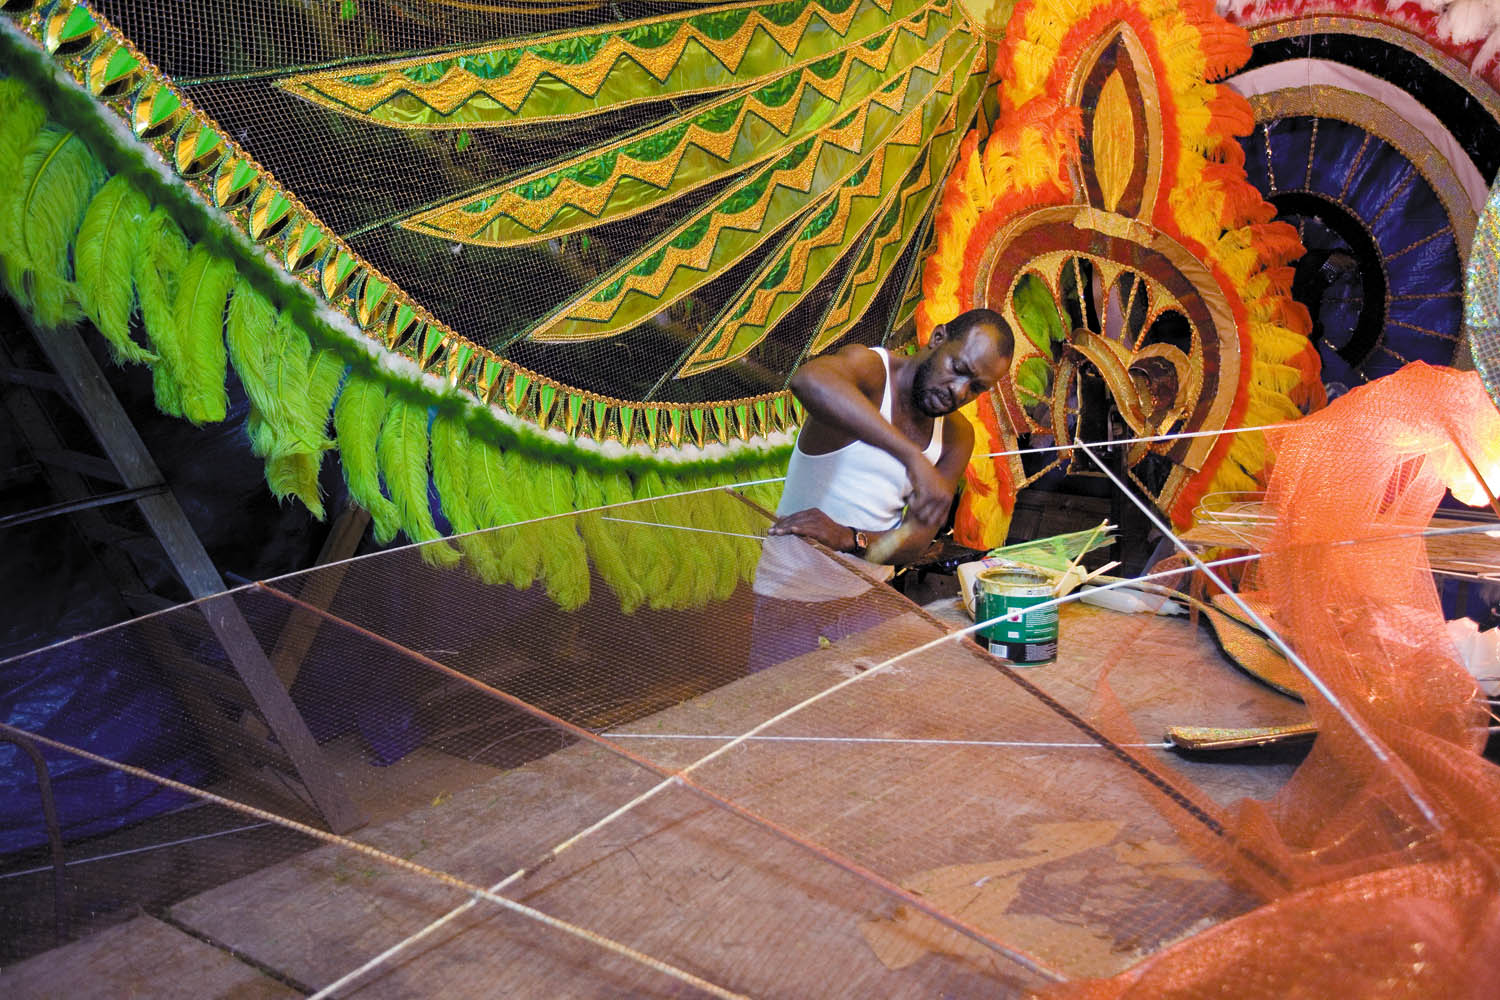 Rodney Duncan prepares the frame for Ohina, Lady of D' Morning, one of two Queen contestants from Stephen Derek's D' Midas and Associates, who presented their band Amazonia on Carnival Monday and Tuesday. Photograph by Mark Lyndersay